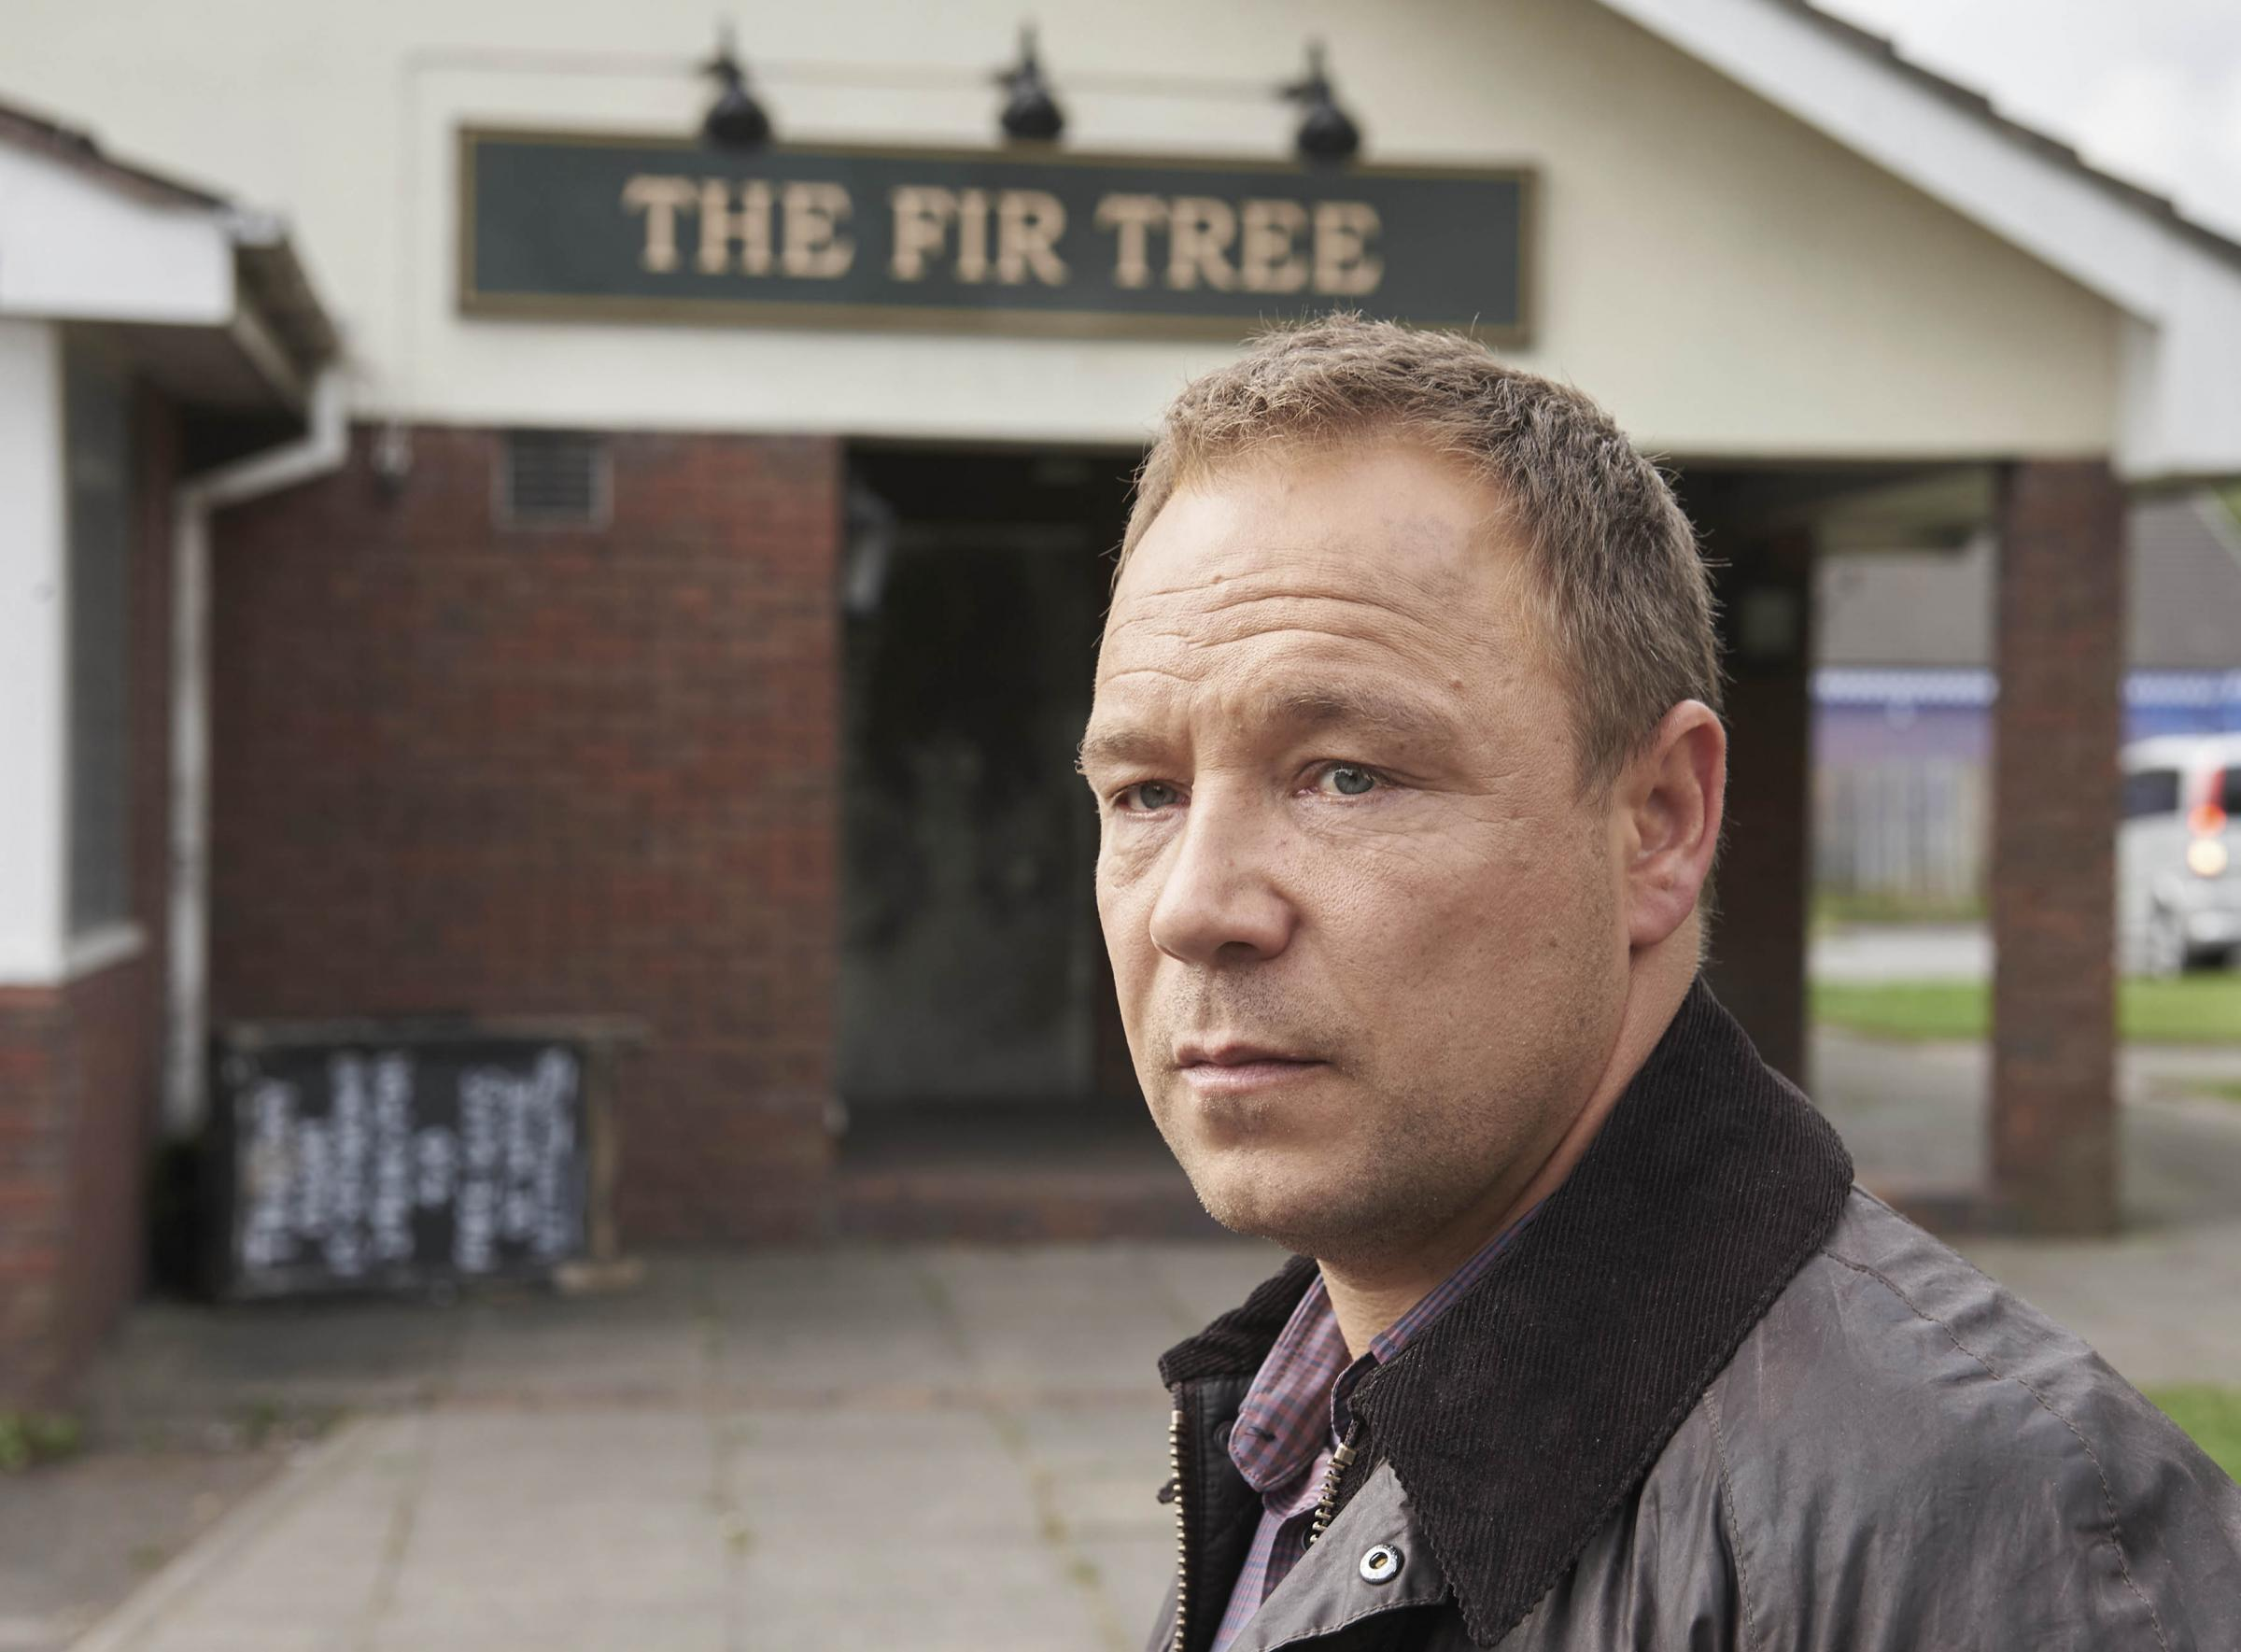 Stephen Graham will be playing at Adams Park for charity next May. Credit: ITV